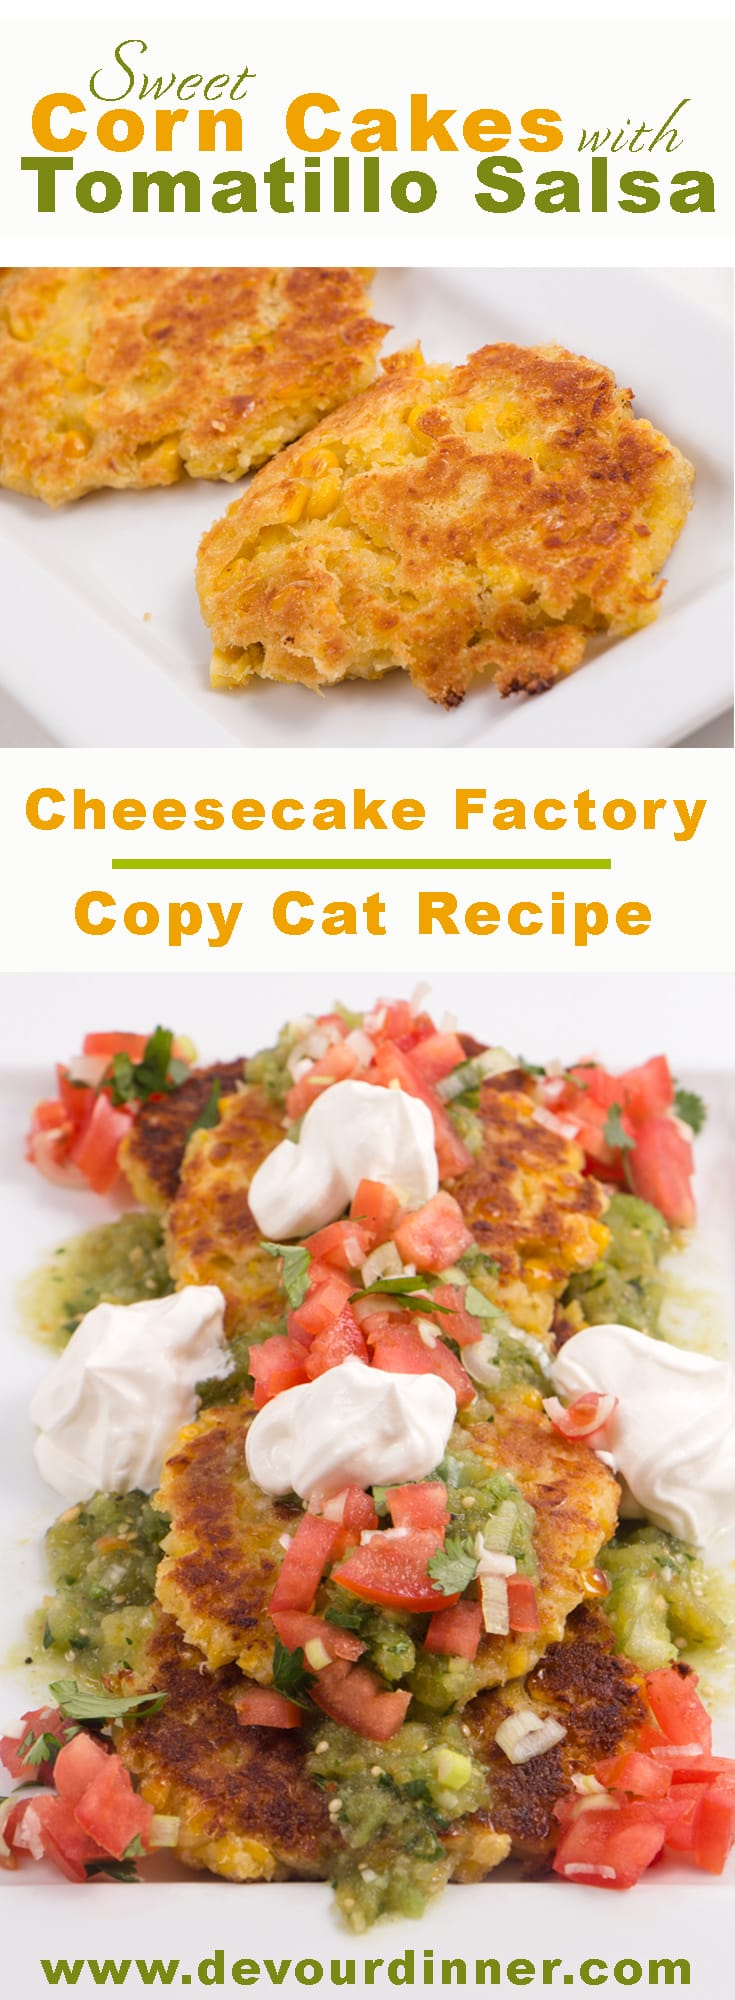 Delicious and yummy full of flavor in these Sweet Corn Cakes, a copycat recipe from Cheesecake Factory. Serve with any Mexican recipe. Best as an appetizer or side dish. Yummy sweet flavor, sweet corn cakes. #devourdinner #recipes #recipe #food #Foodie #Foodblogger #easyrecipes #appetizer #Sidedish #dessert #yummy #cheesecakefactory #Copycatrecipe #cheesecakefactorycopycatrecipe #Mexican #Mexicanrecipe